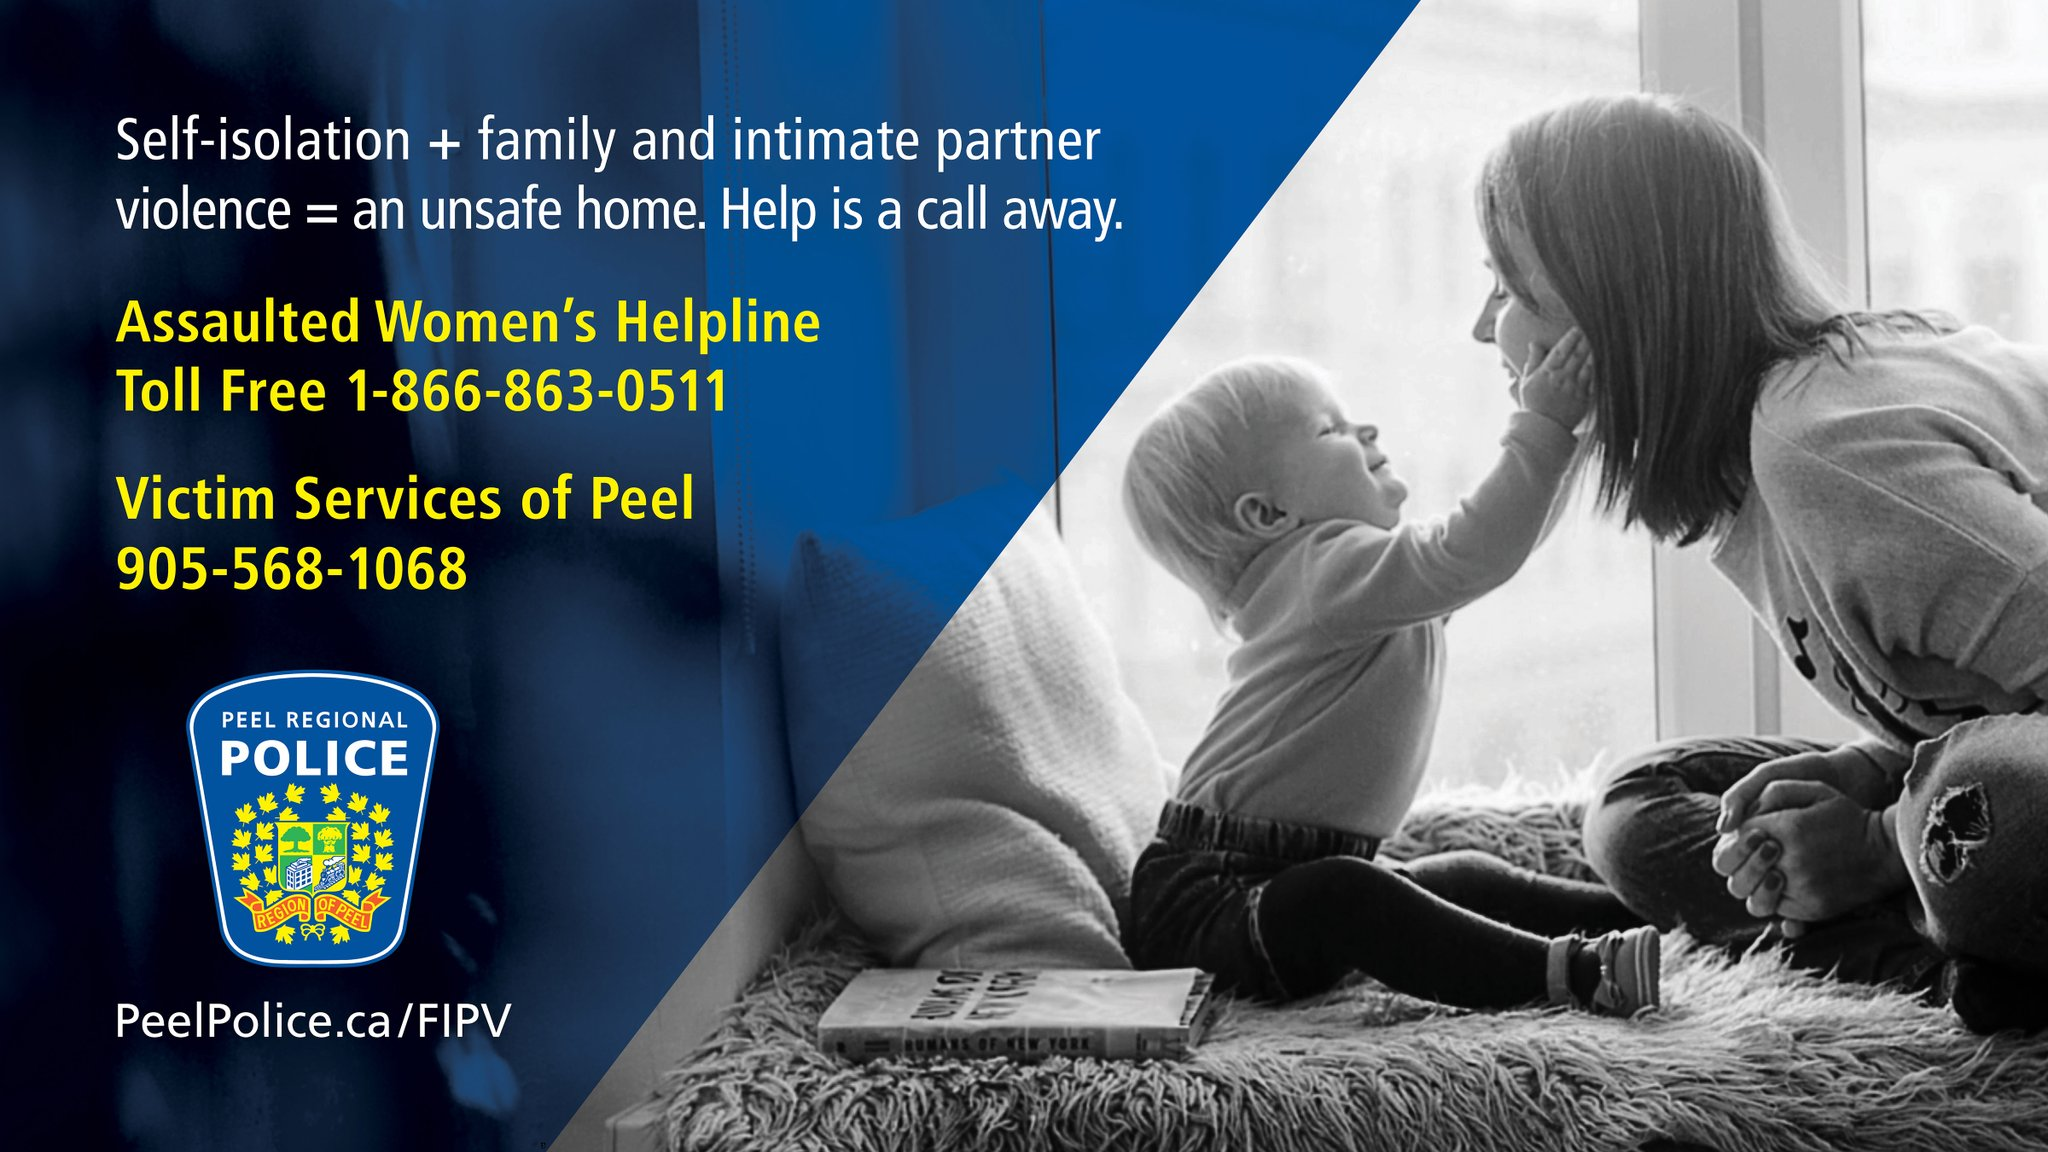 Peel Regional Police On Twitter Family And Intimate Partner Violence Is Never Okay Support Resources And Safety Plans Are Available Https T Co Gqyhczdvvh Victimservpeel Pcawa1 Safecentre Https T Co 1rwbklvjo4